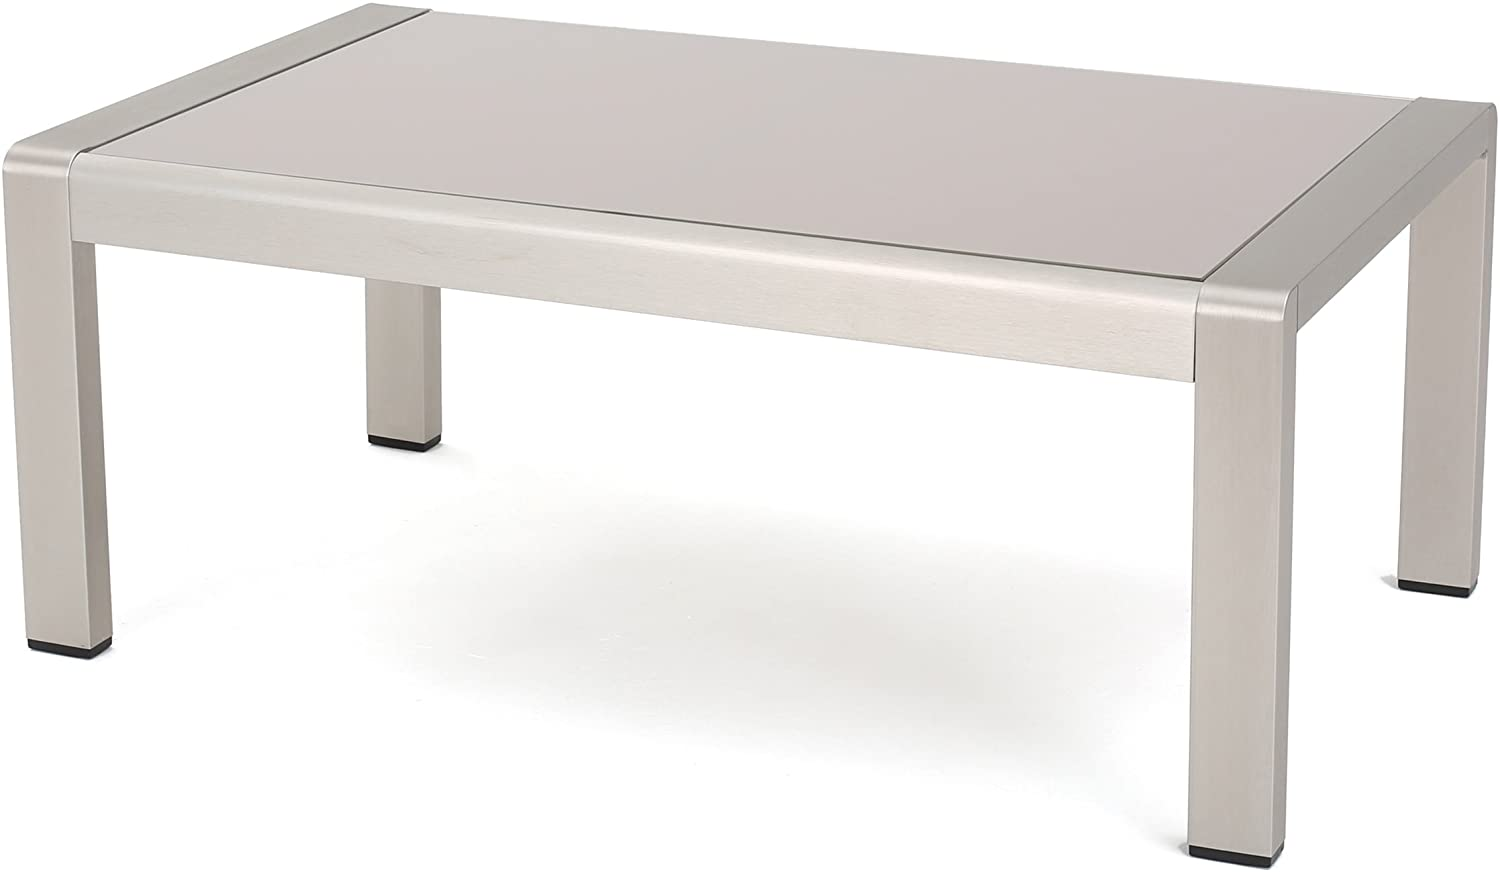 Christopher Knight Home Cape Coral Outdoor Aluminum Coffee Table with Glass Top, Silver : Garden & Outdoor